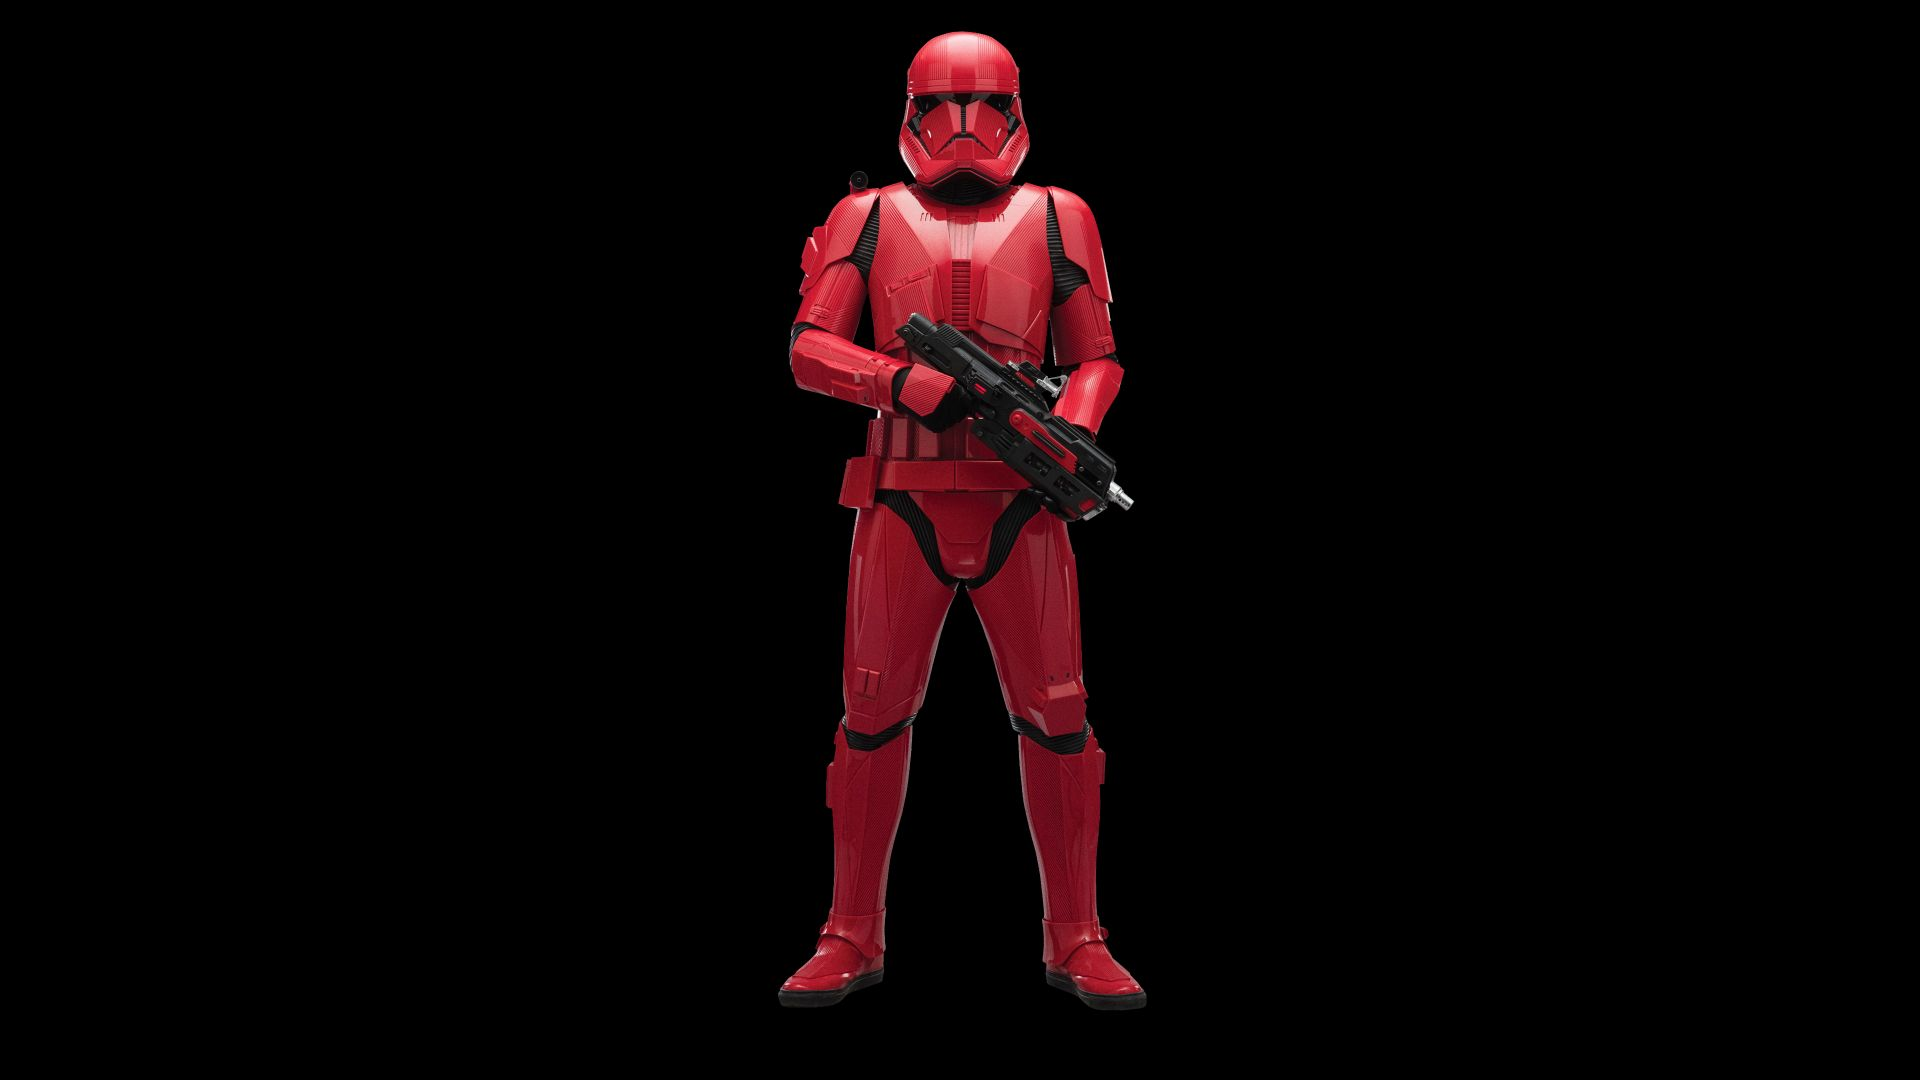 Star Wars The Rise of Skywalker Sith trooper Stormtrooper Wallpaper